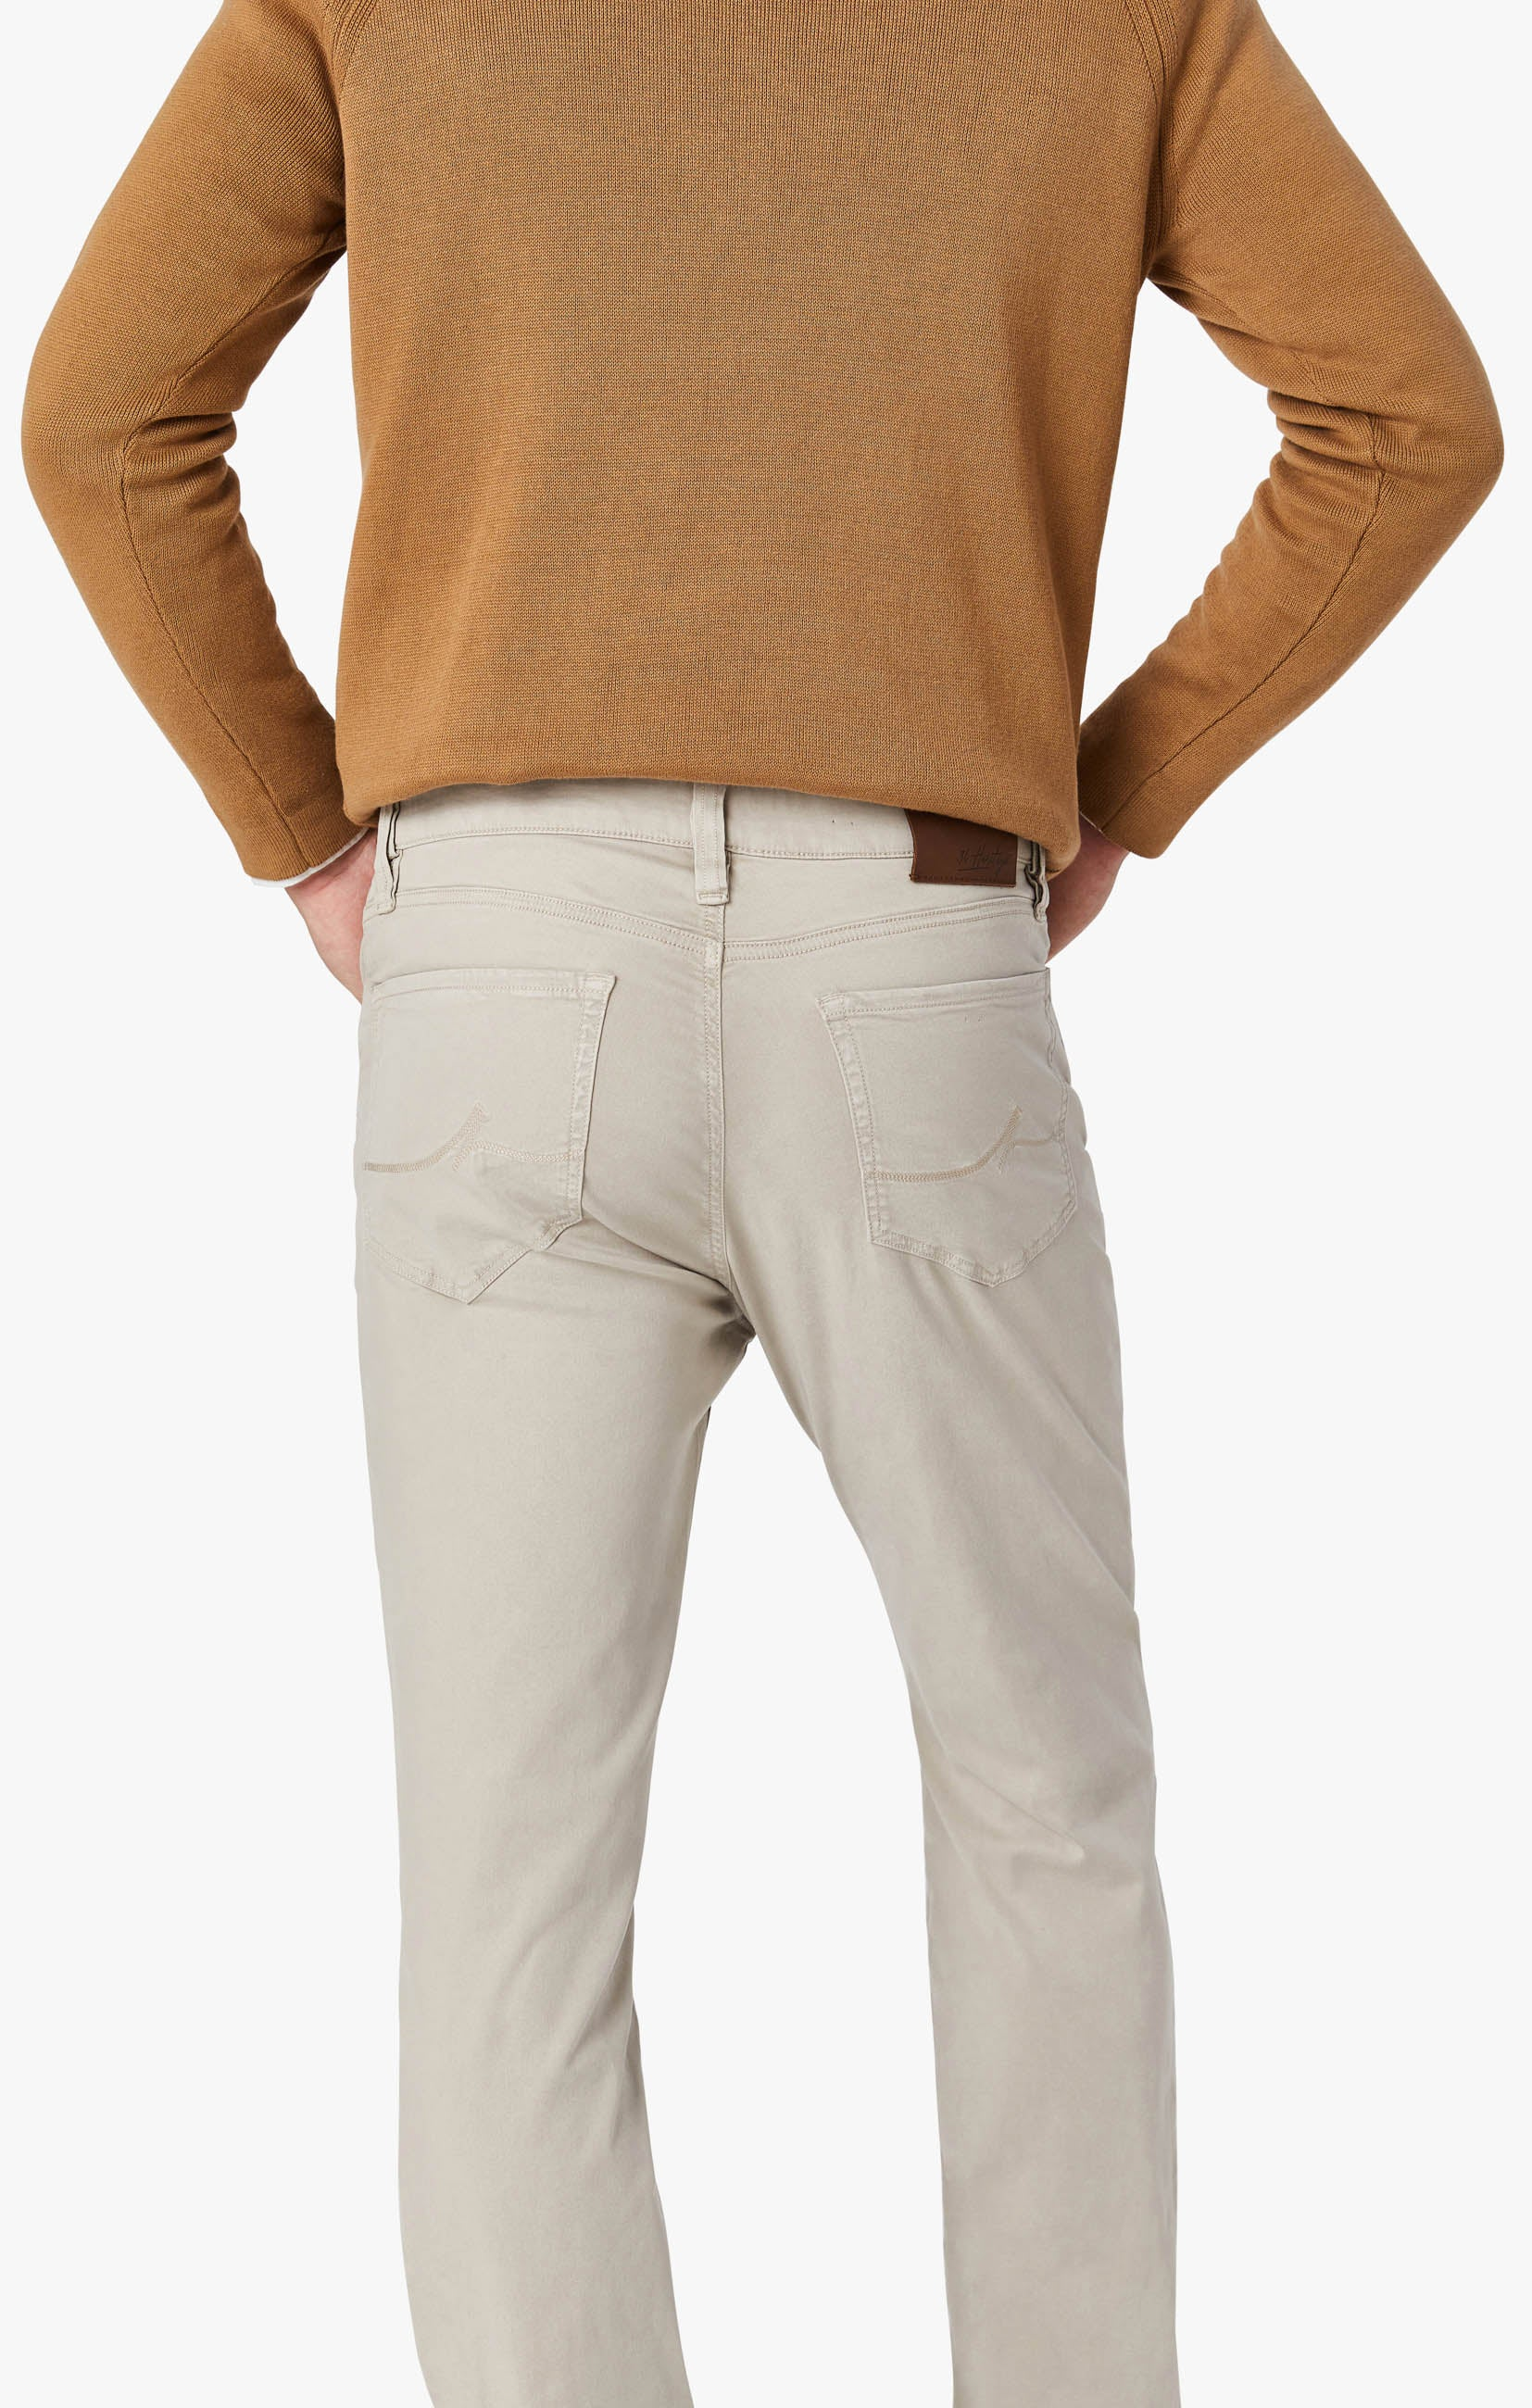 Charisma Relaxed Straight Leg Pants in Dawn Twill Image 6